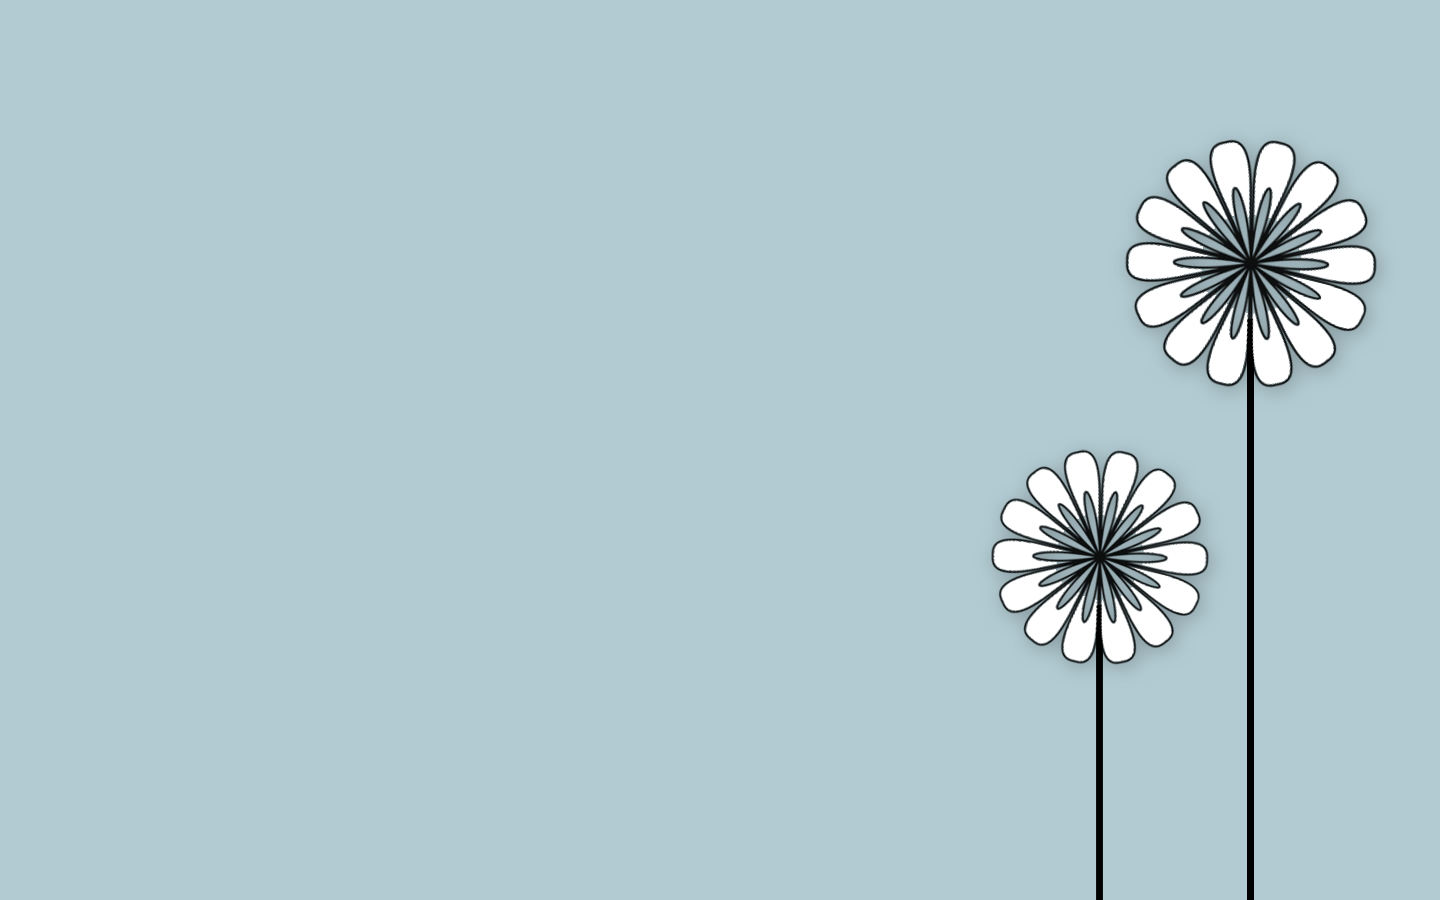 55 Beautiful And Minimalistic Wallpapers For Your Desktop